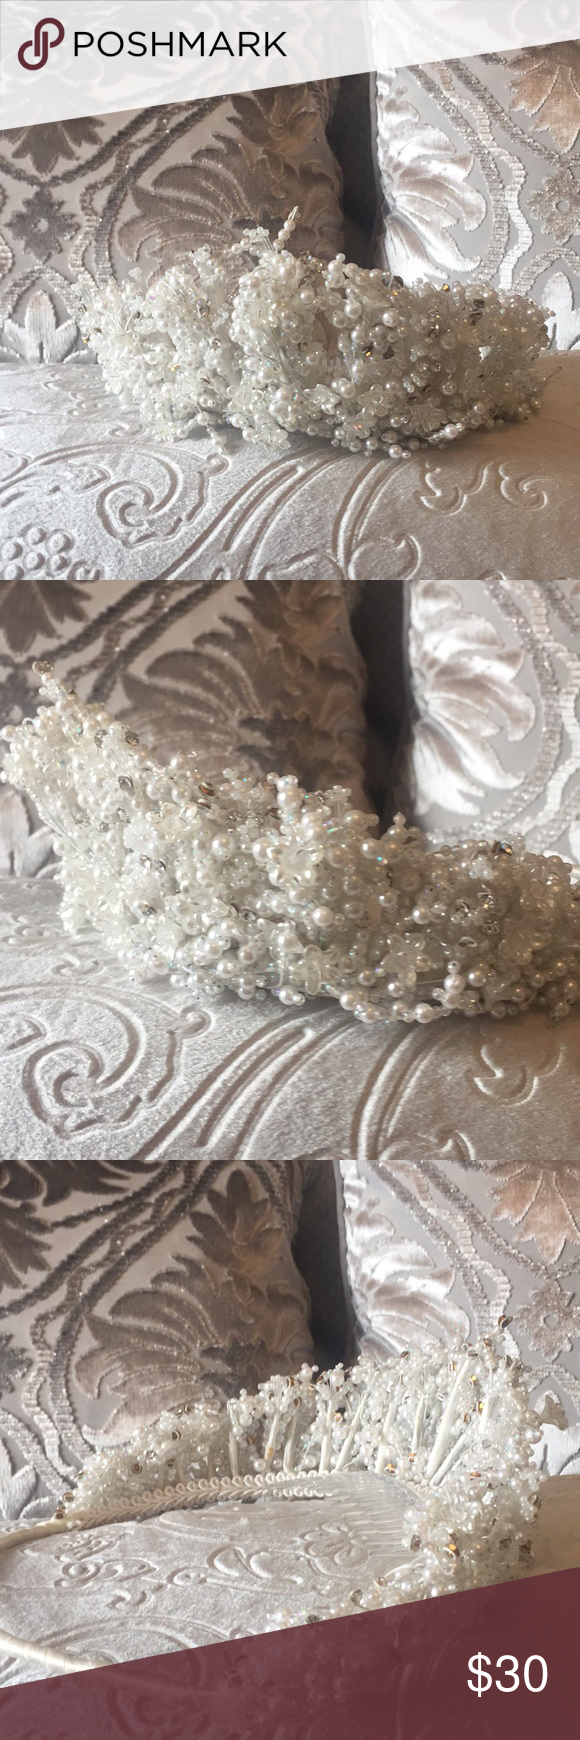 Bridal Crown In 2018 My Posh Closet Pinterest Hanvin Pochette 25 Green Bamboo With Pearls And Crystals Accessories Hair